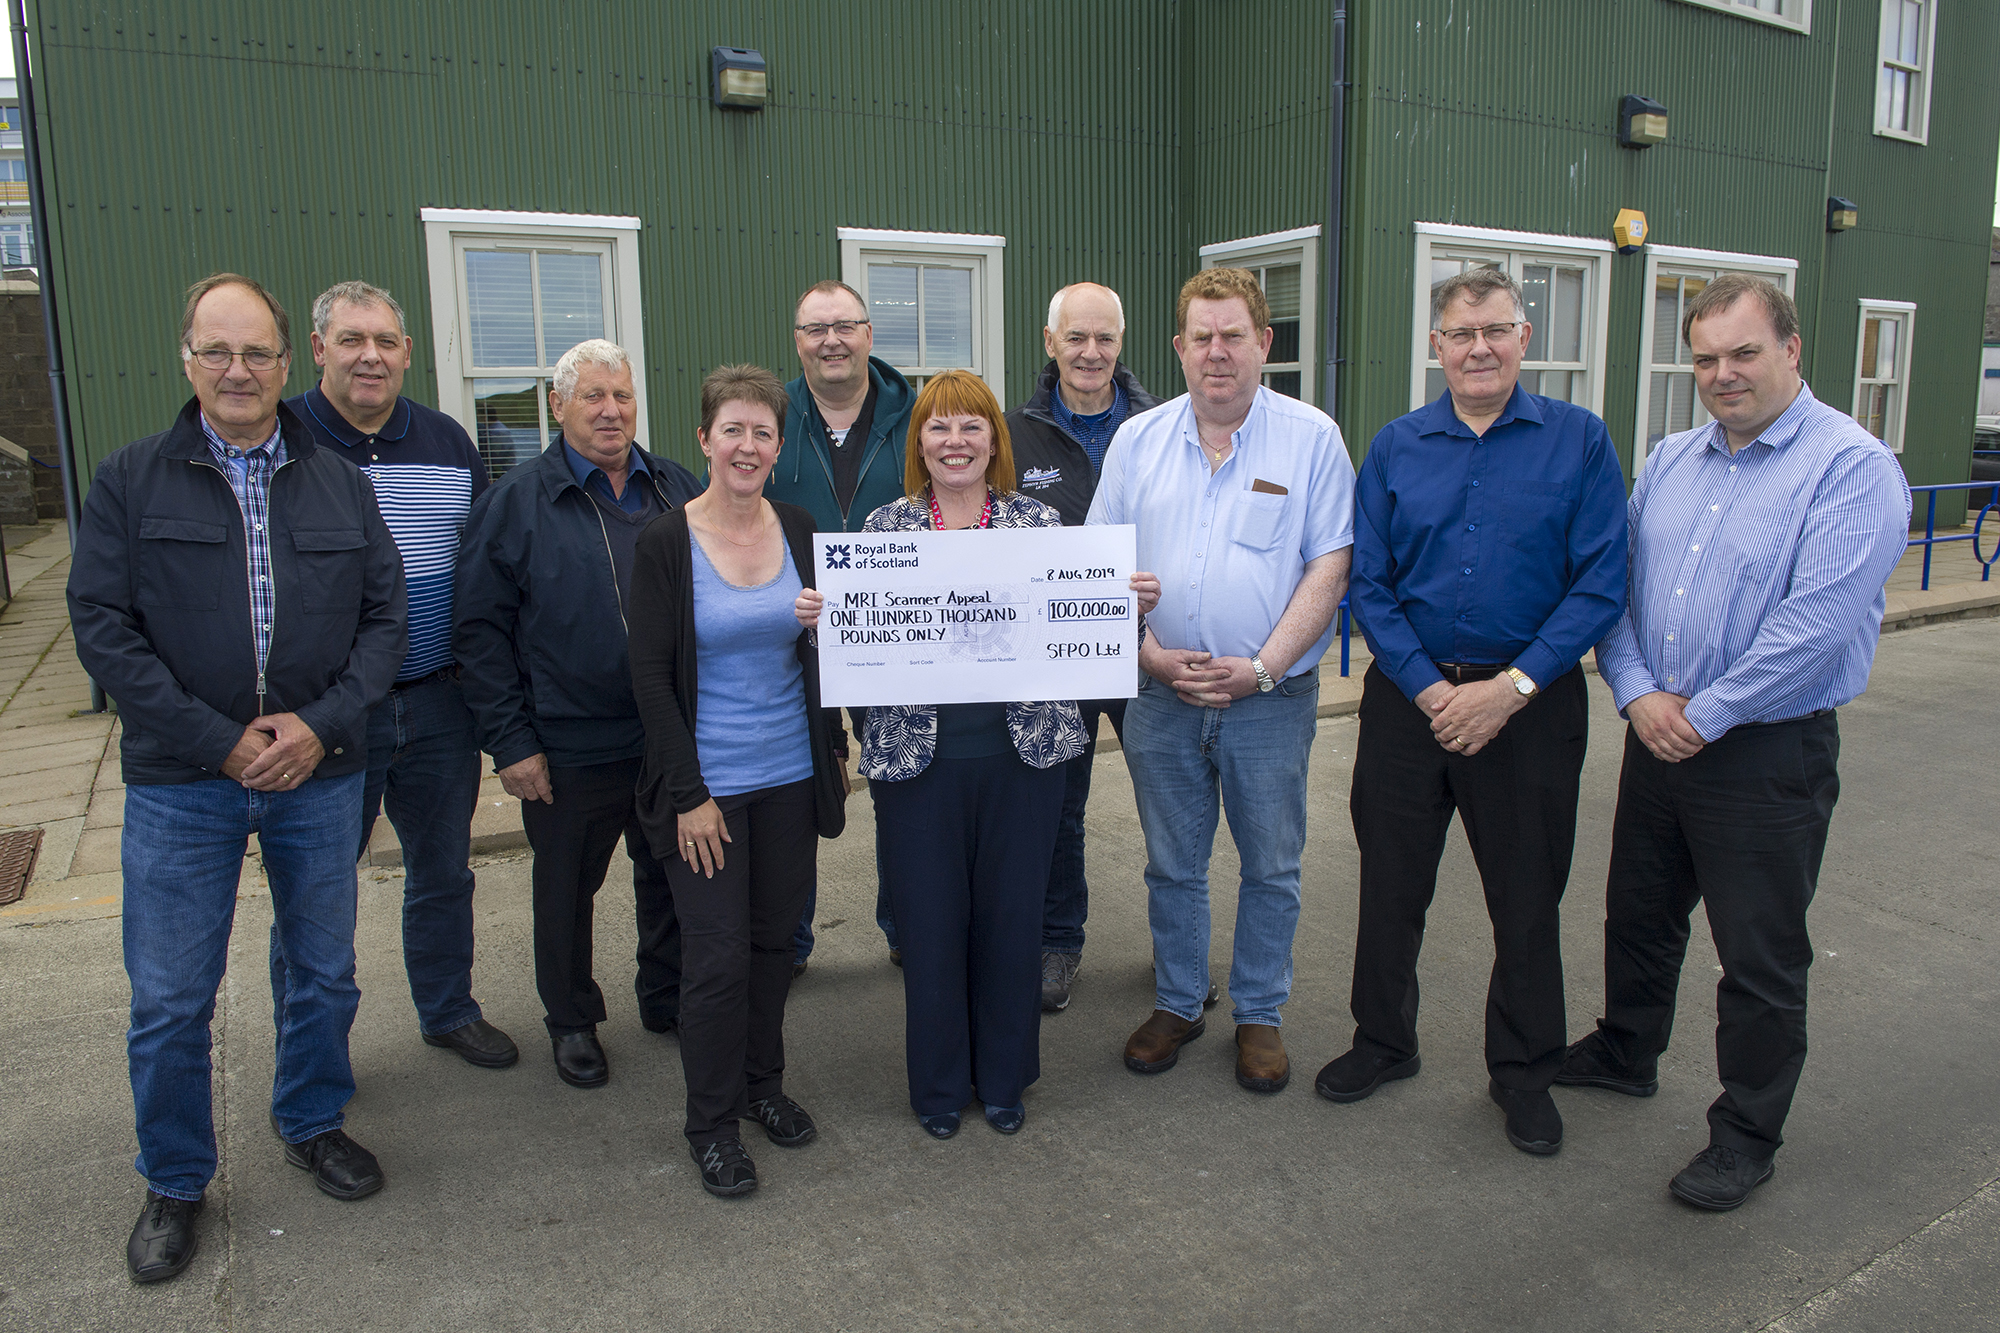 From left, Tommy Eunson (Serene); George William Anderson (Adenia); Davie Hutchison (Charisma); Una Simpson, (SFPO); Gary Williamson (Research) Lorraine Hall, NHS director of human resources and support services; Allister Irvine (Zephyr); Raymond Stewart (Antarctic II); Lowrie Irvine (Antares); Brian Isbister (SFPO).